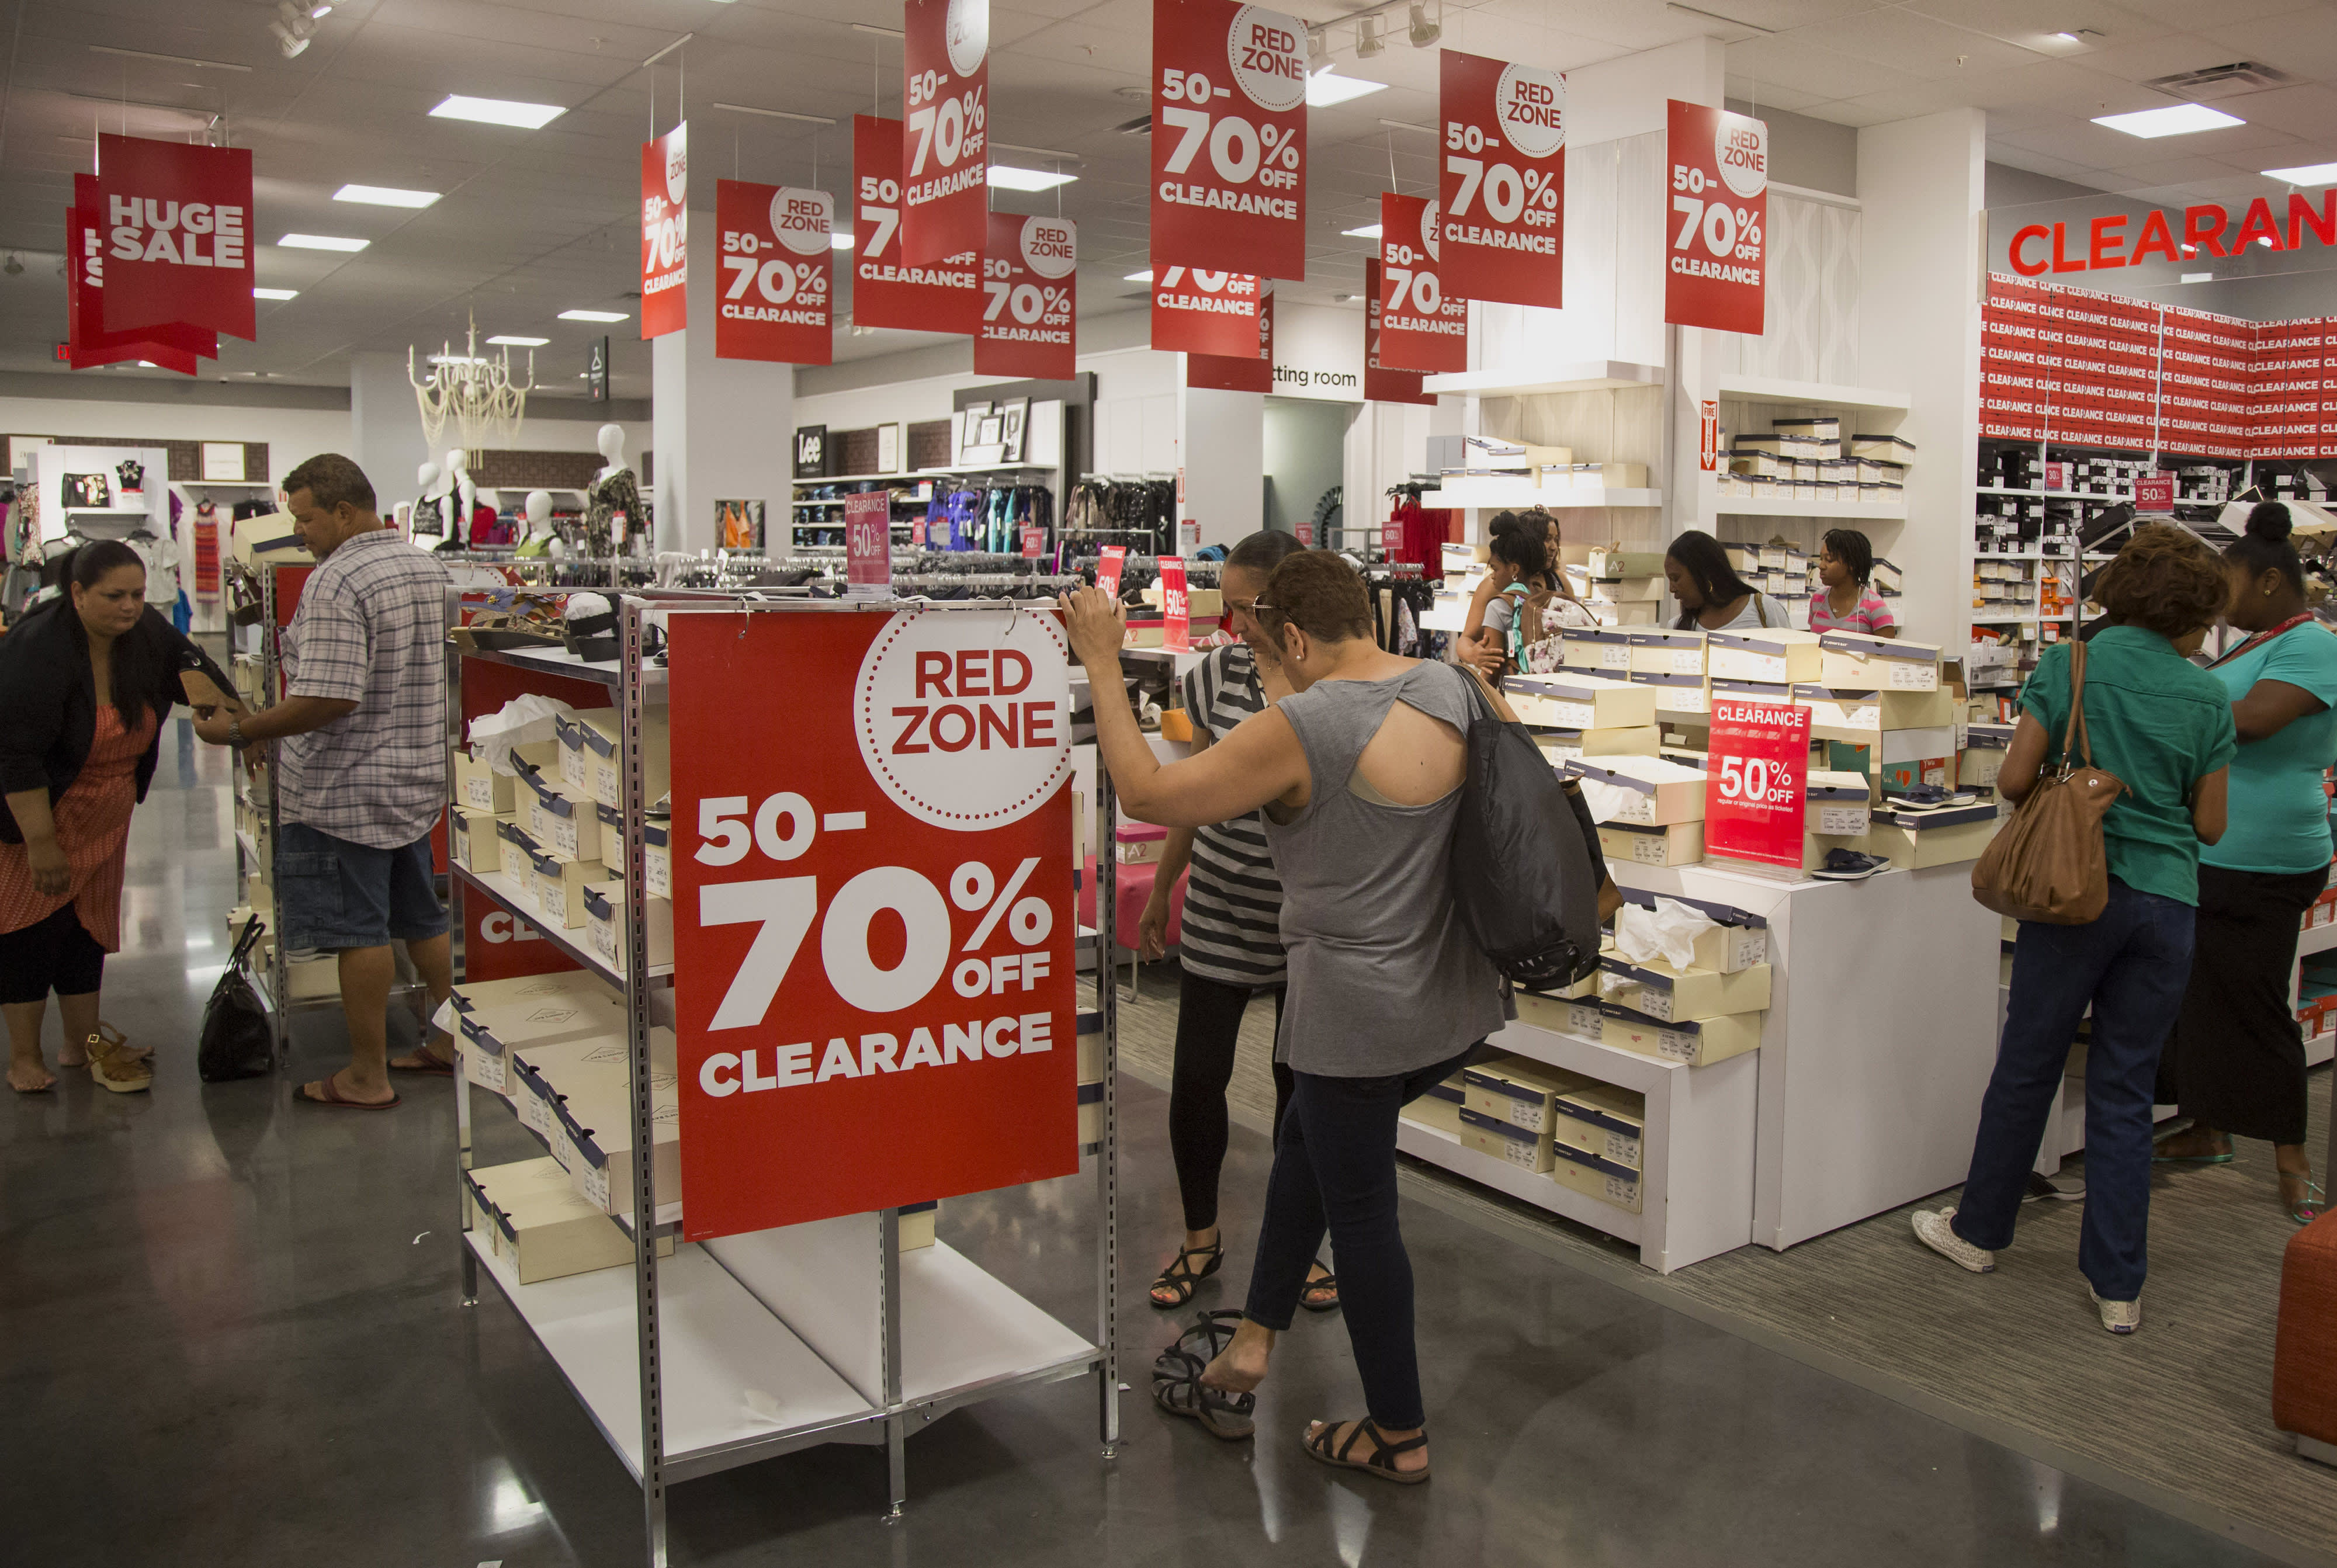 Jc Penney Border Tax Makes Profits Virtually Impossible In Short Run